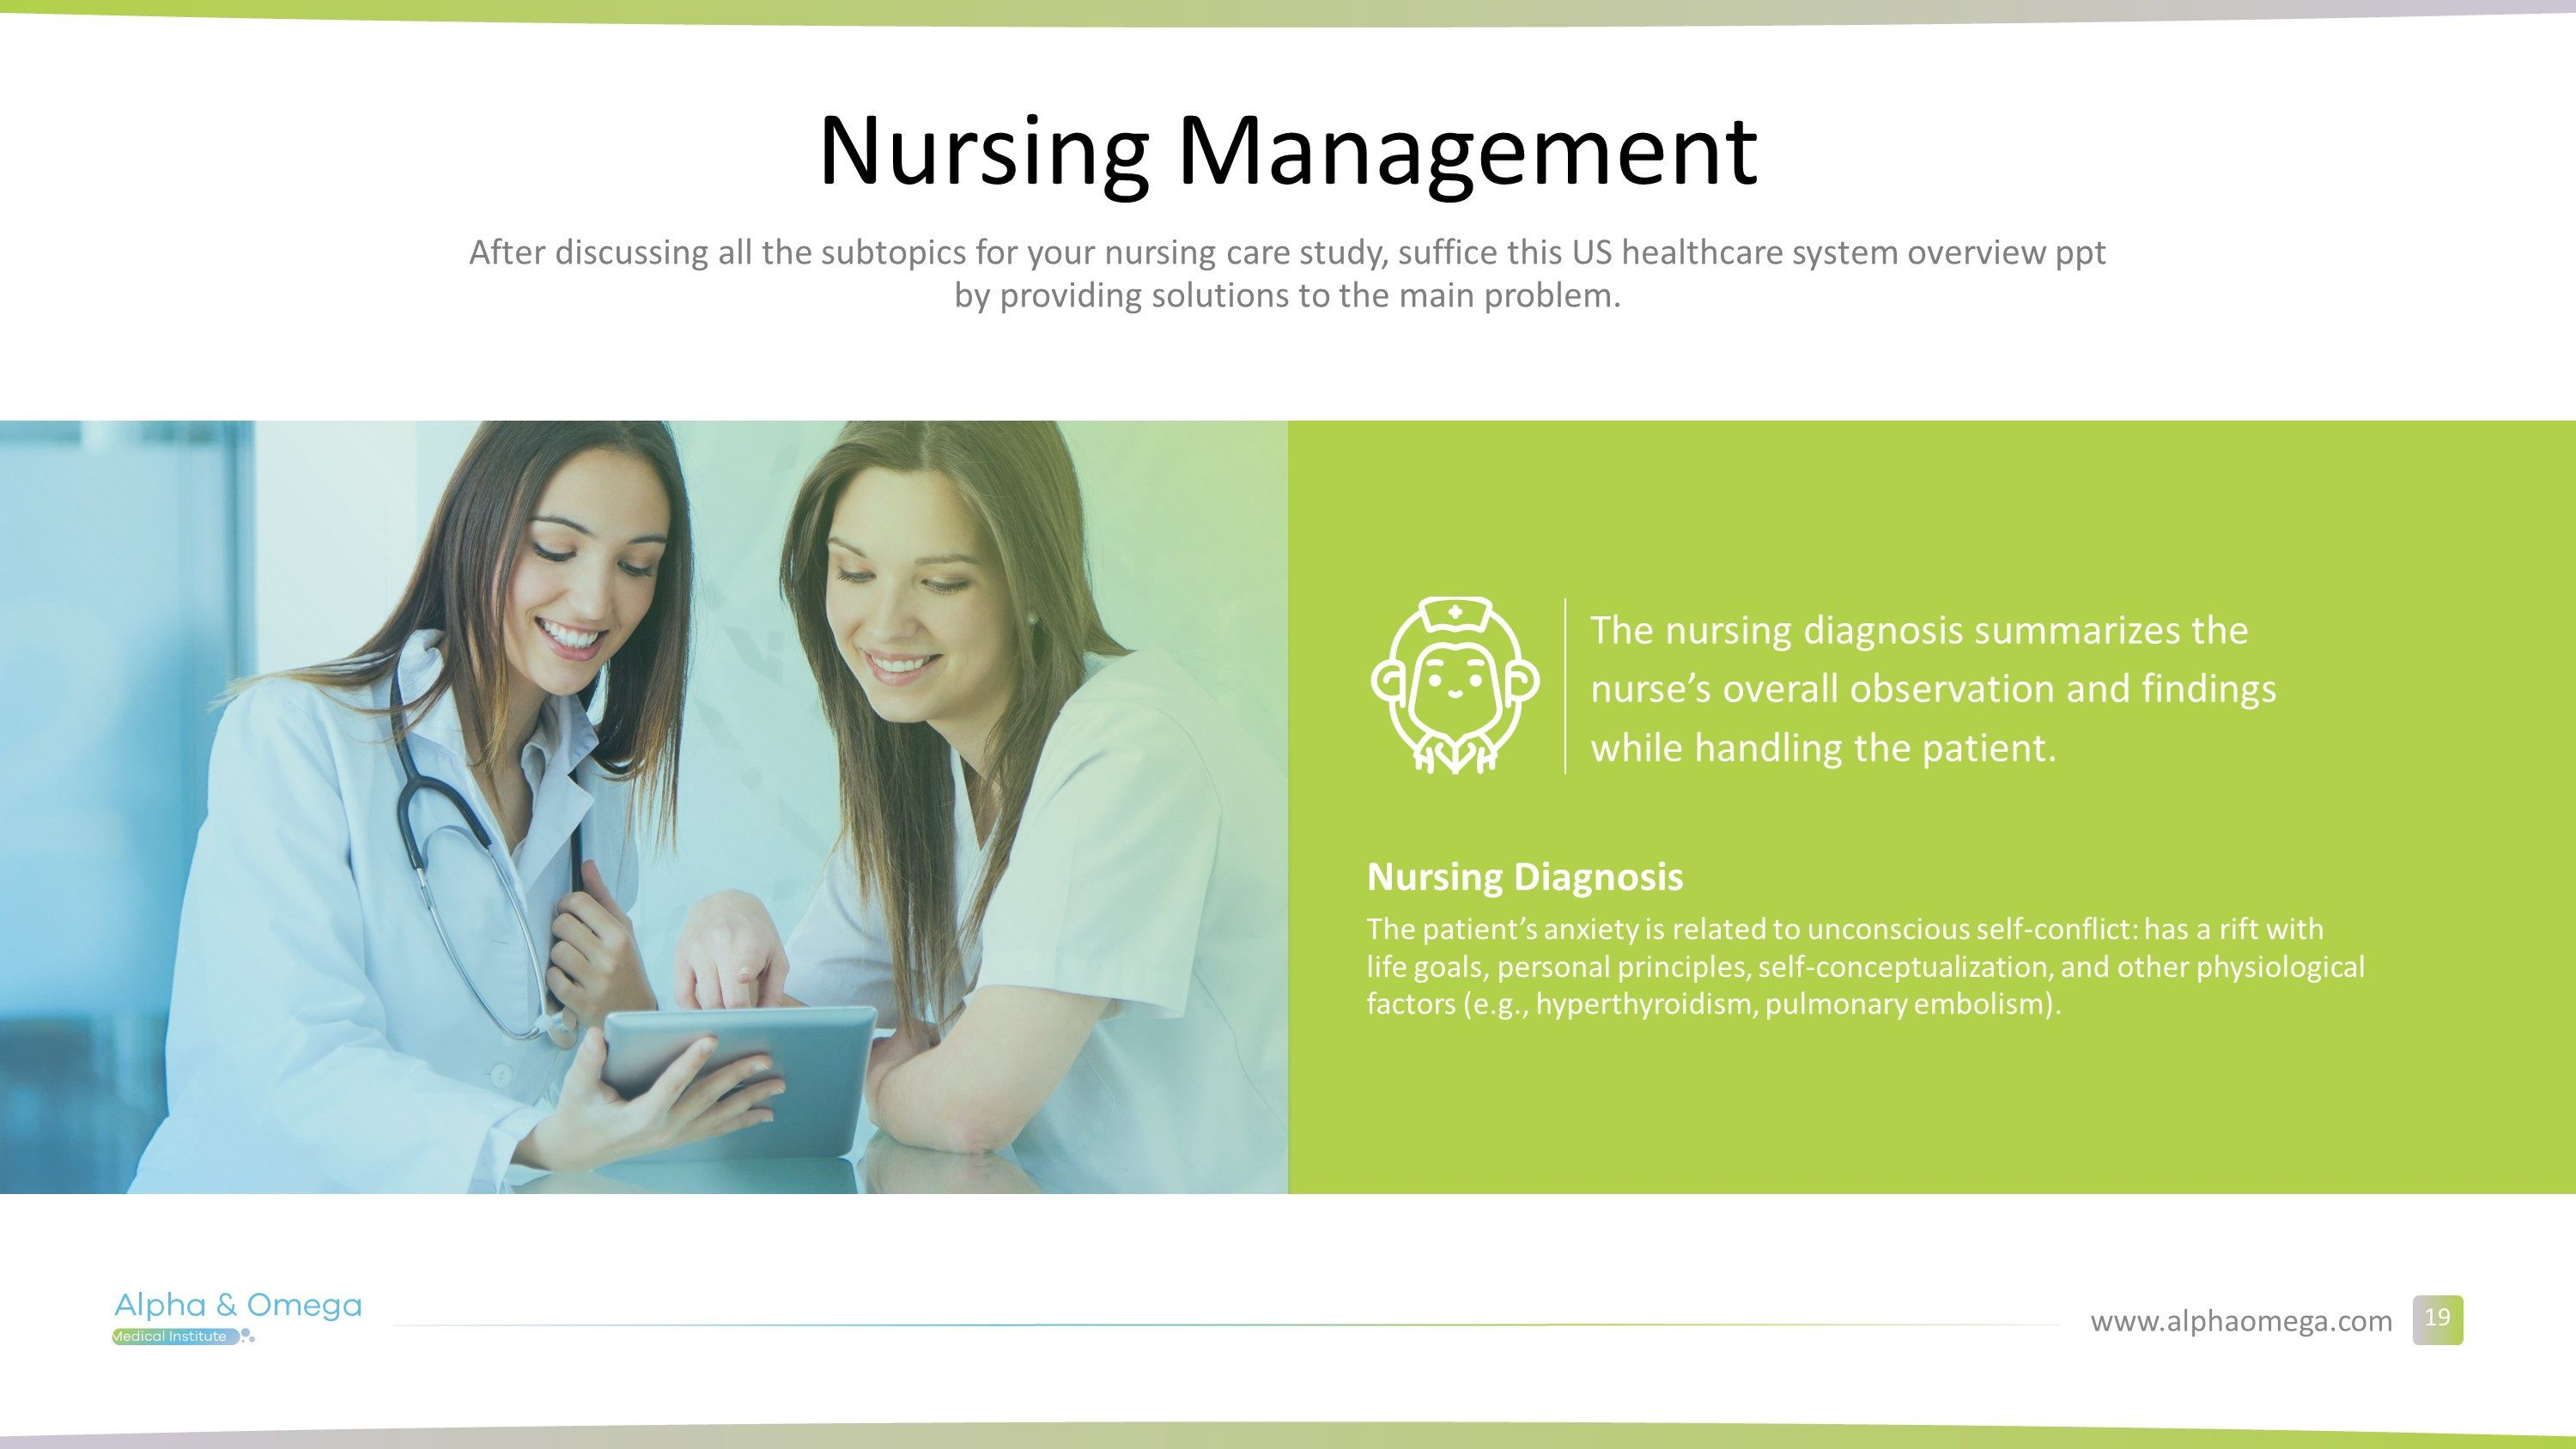 006 Impressive Free Nursing Powerpoint Template Highest Quality  Education DownloadFull